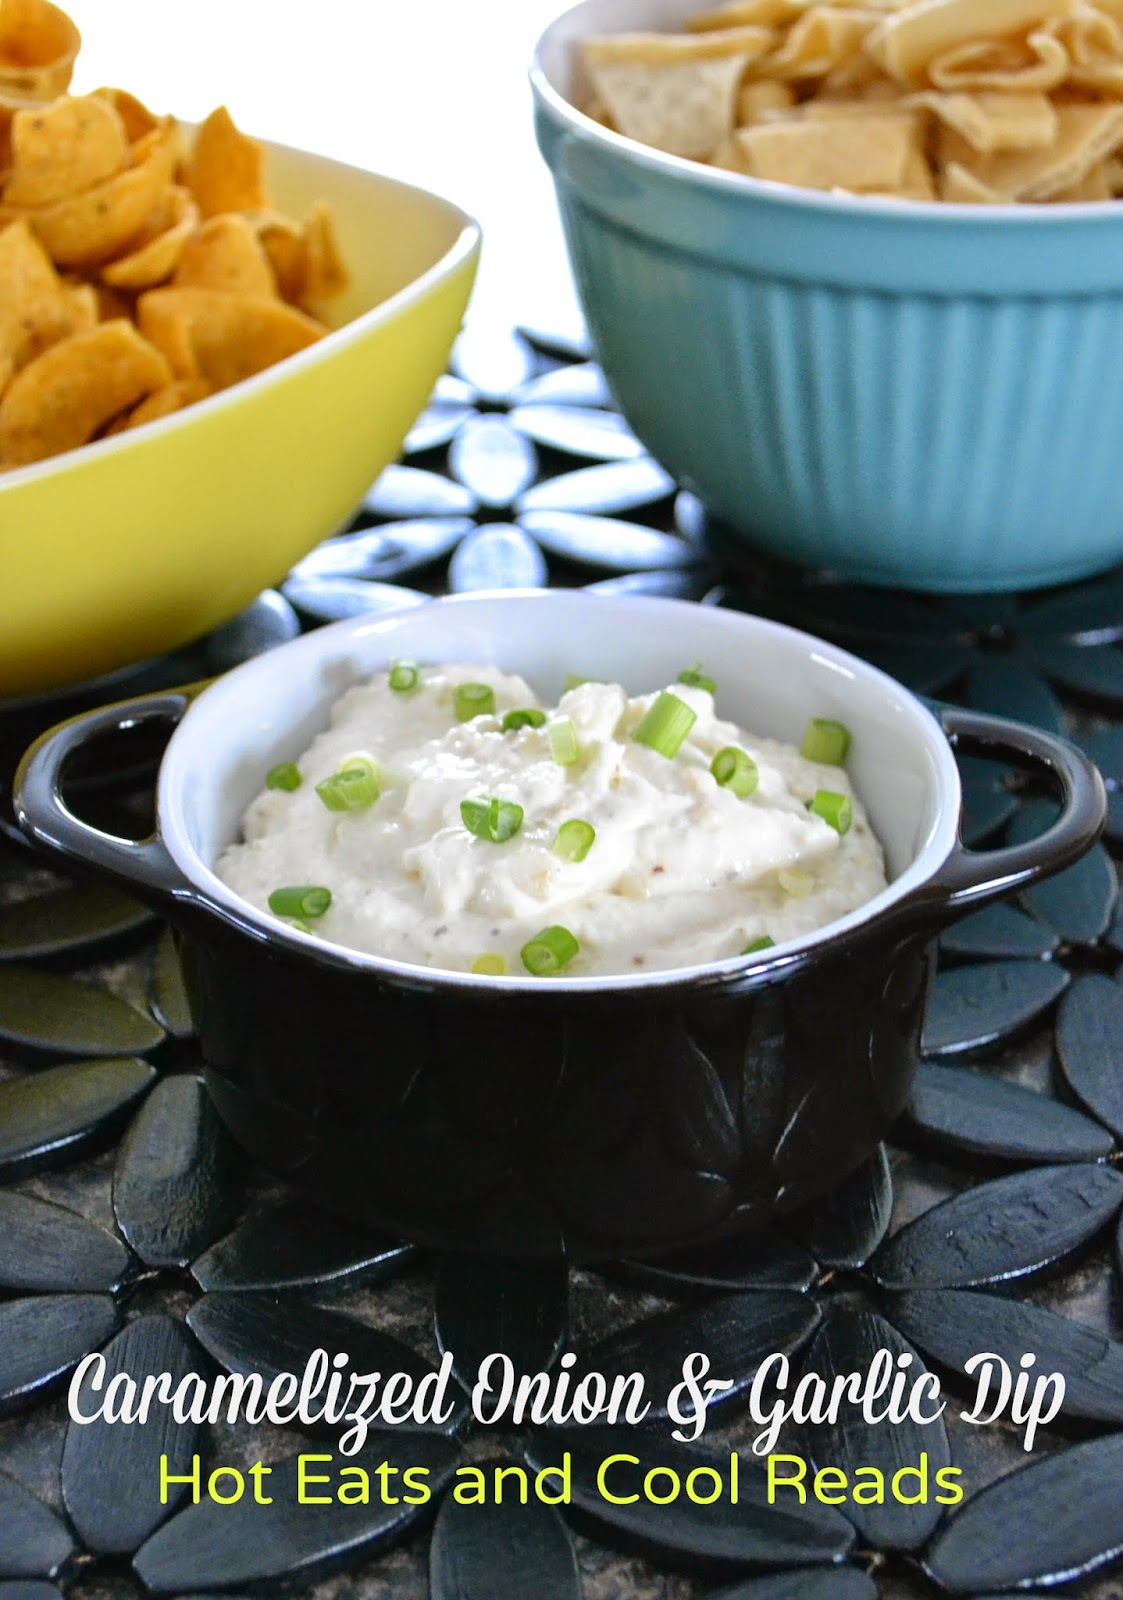 Serve this amazing dip at your next party! It is a crowd pleaser! Caramelized Onion and Garlic Chip Dip from Hot Eats and Cool Reads!